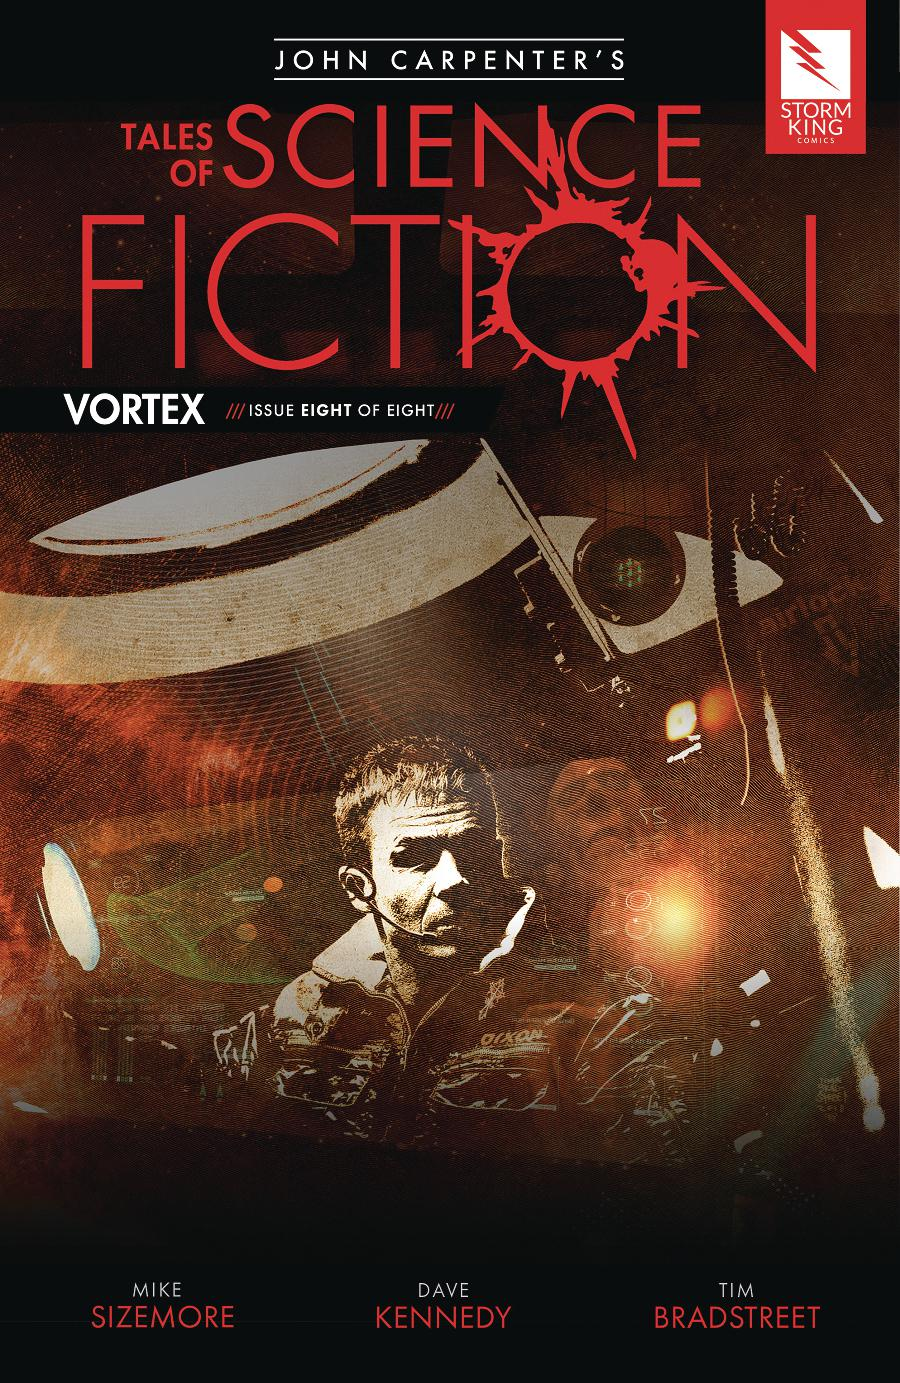 John Carpenters Tales Of Science Fiction Vortex #8